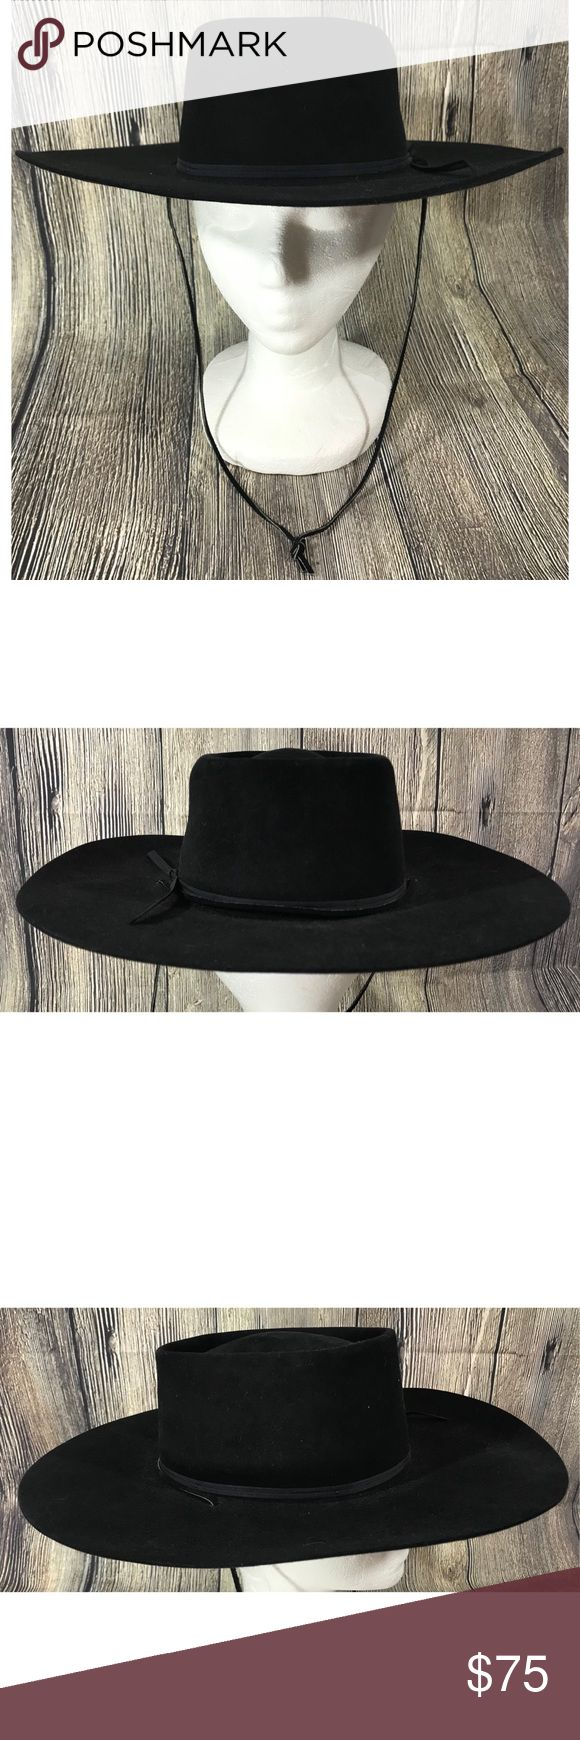 """Rodeo King Felt Long Oval 4X Low Beaver Cowboy Hat Rodeo King Black Felt Long Oval 4X Low Beaver Size 6 7/8 Wide 4"""" Brim Cowboy Hat. Pre owned in excellent condition, retails for $159. Genuine leather sweatband, two cord band, 4"""" brim, 3.5"""" low crown and 4X Low rodeo black felt. Rodeo King Accessories Hats"""